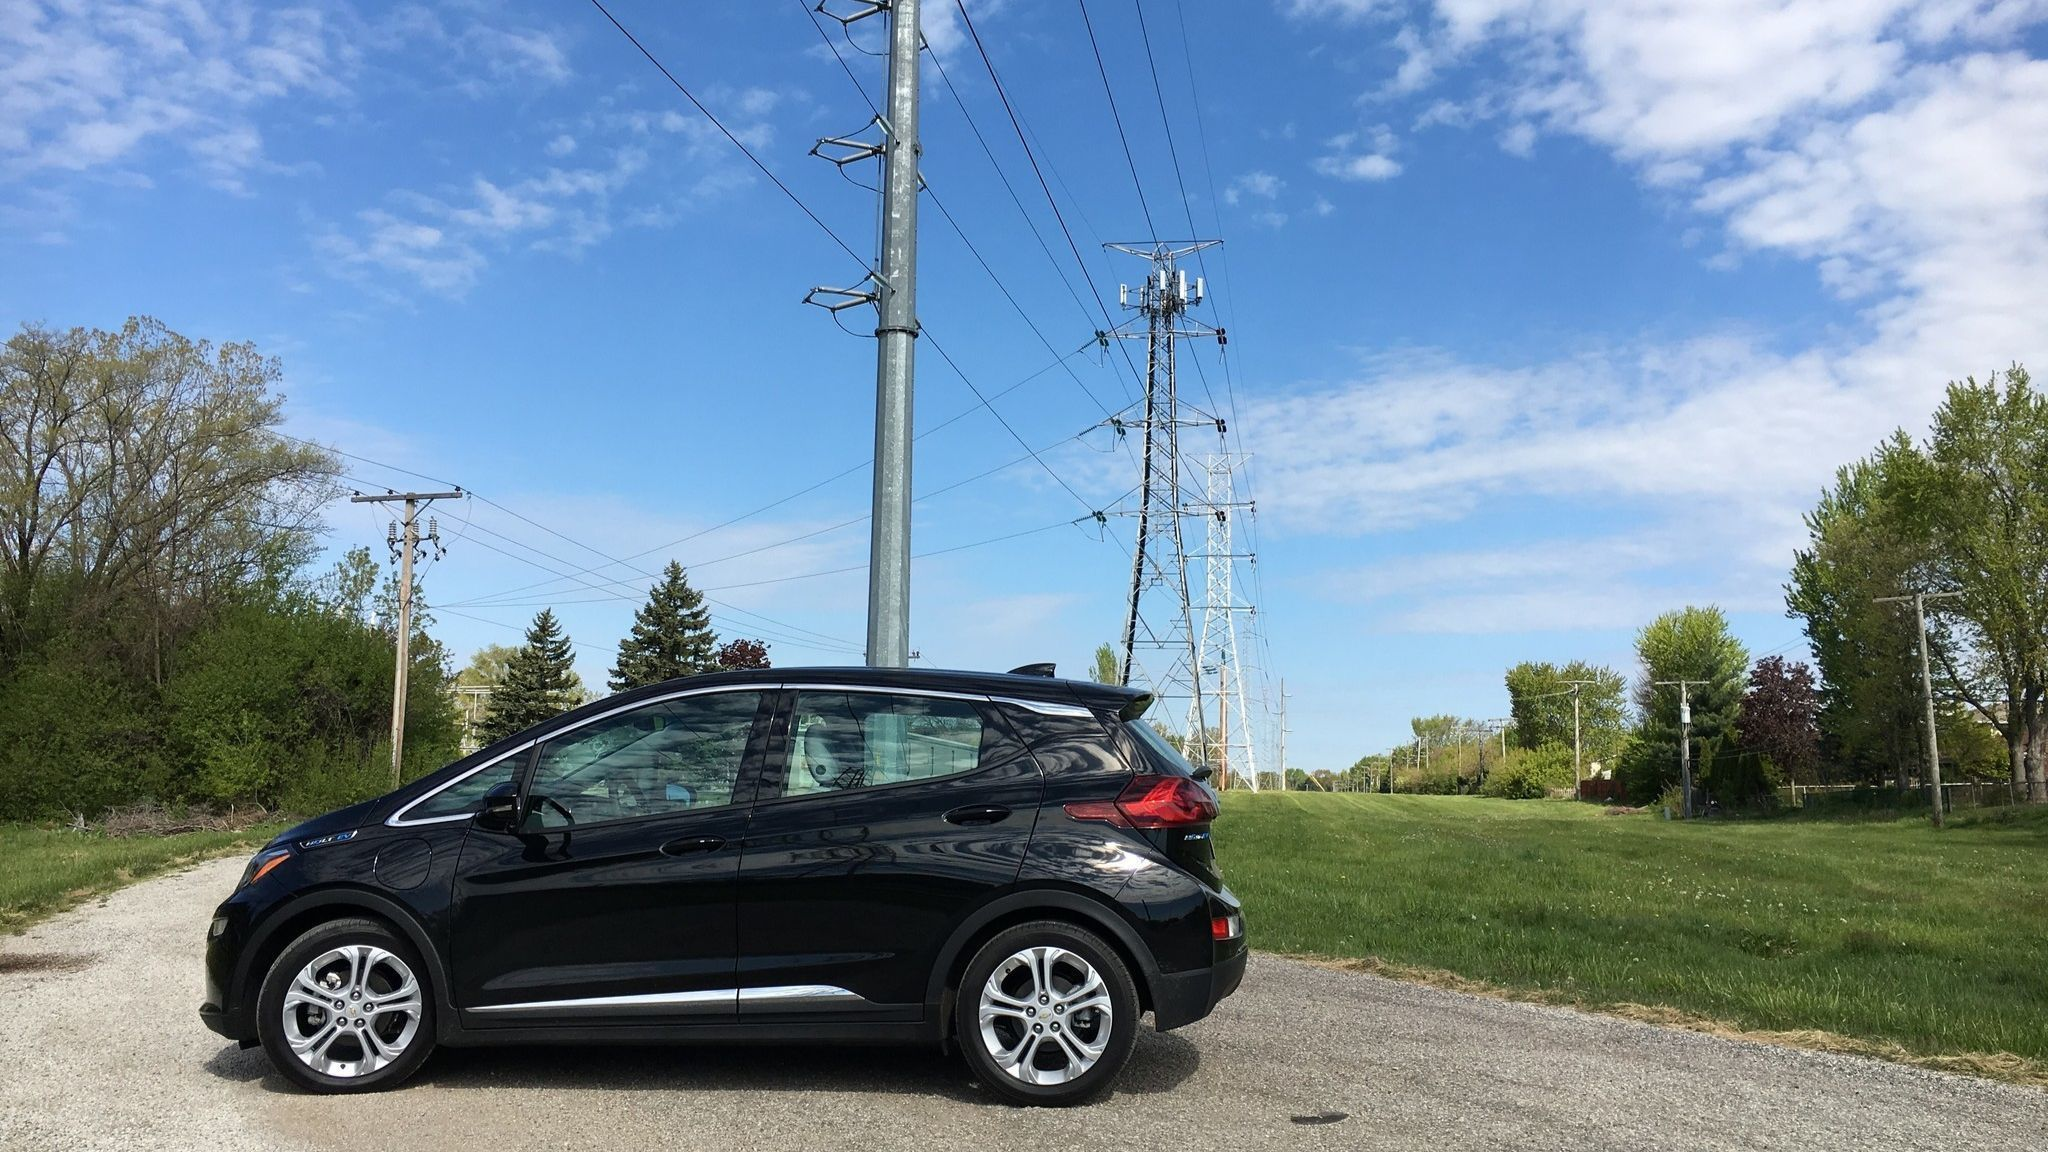 Gm Fights Feds To Keep 7 500 Electric Vehicle Tax Credit